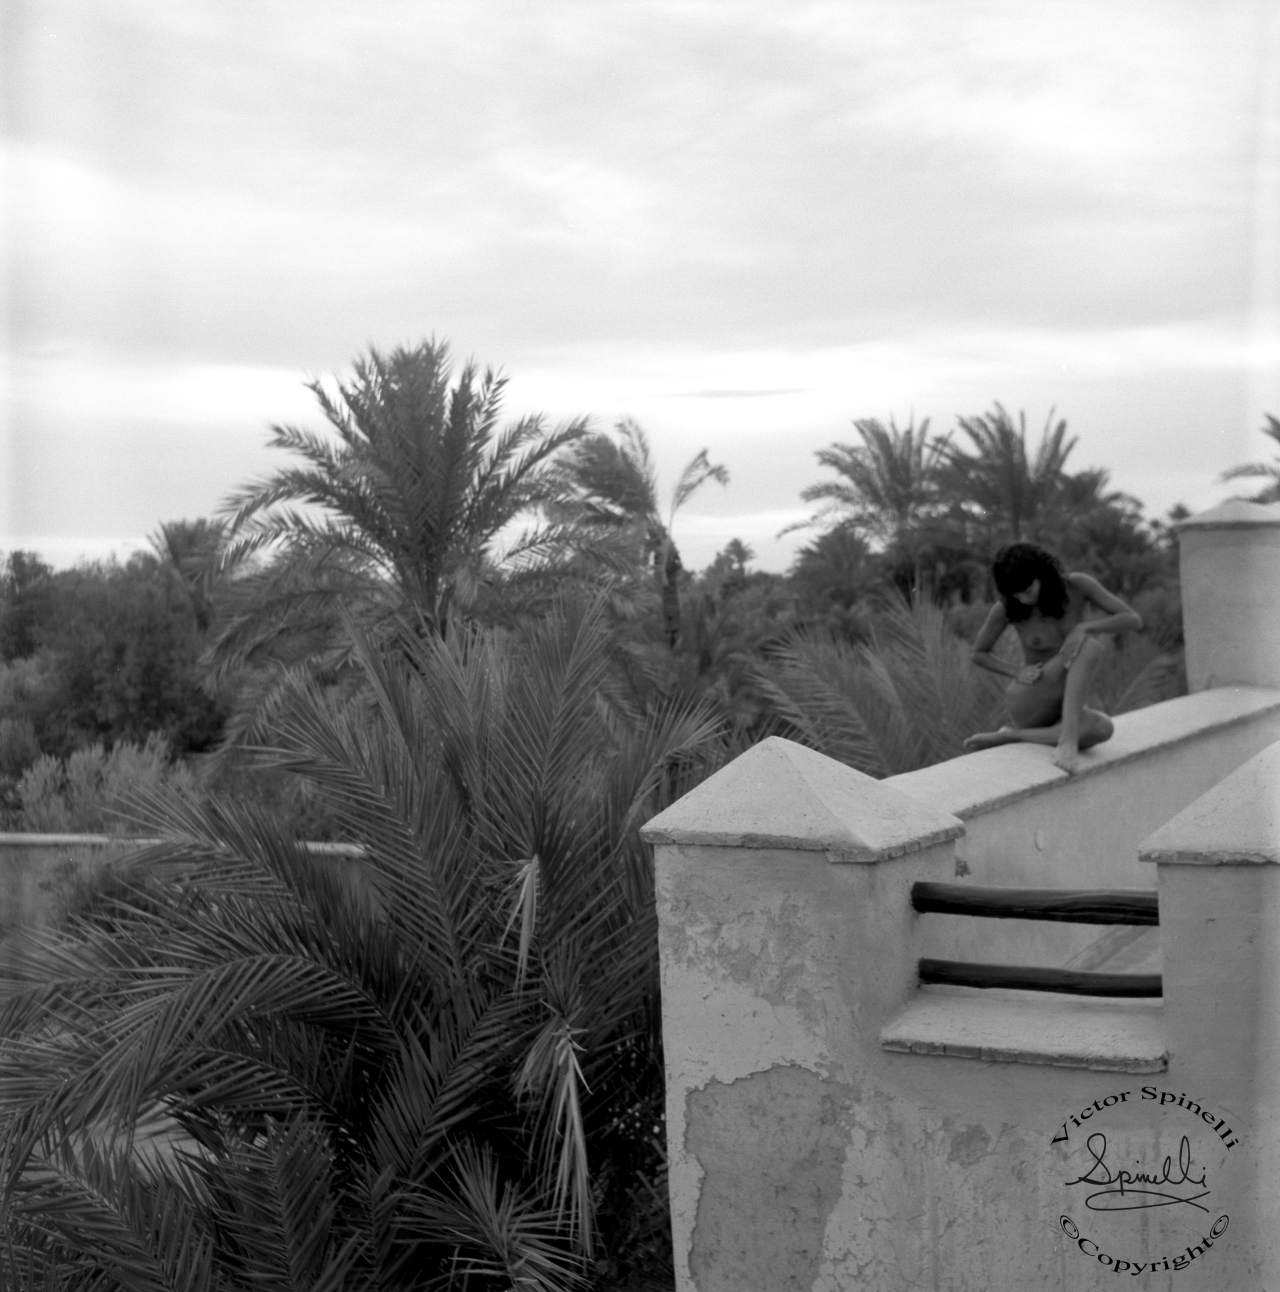 Uncovered in Morocco. An image from the archive…